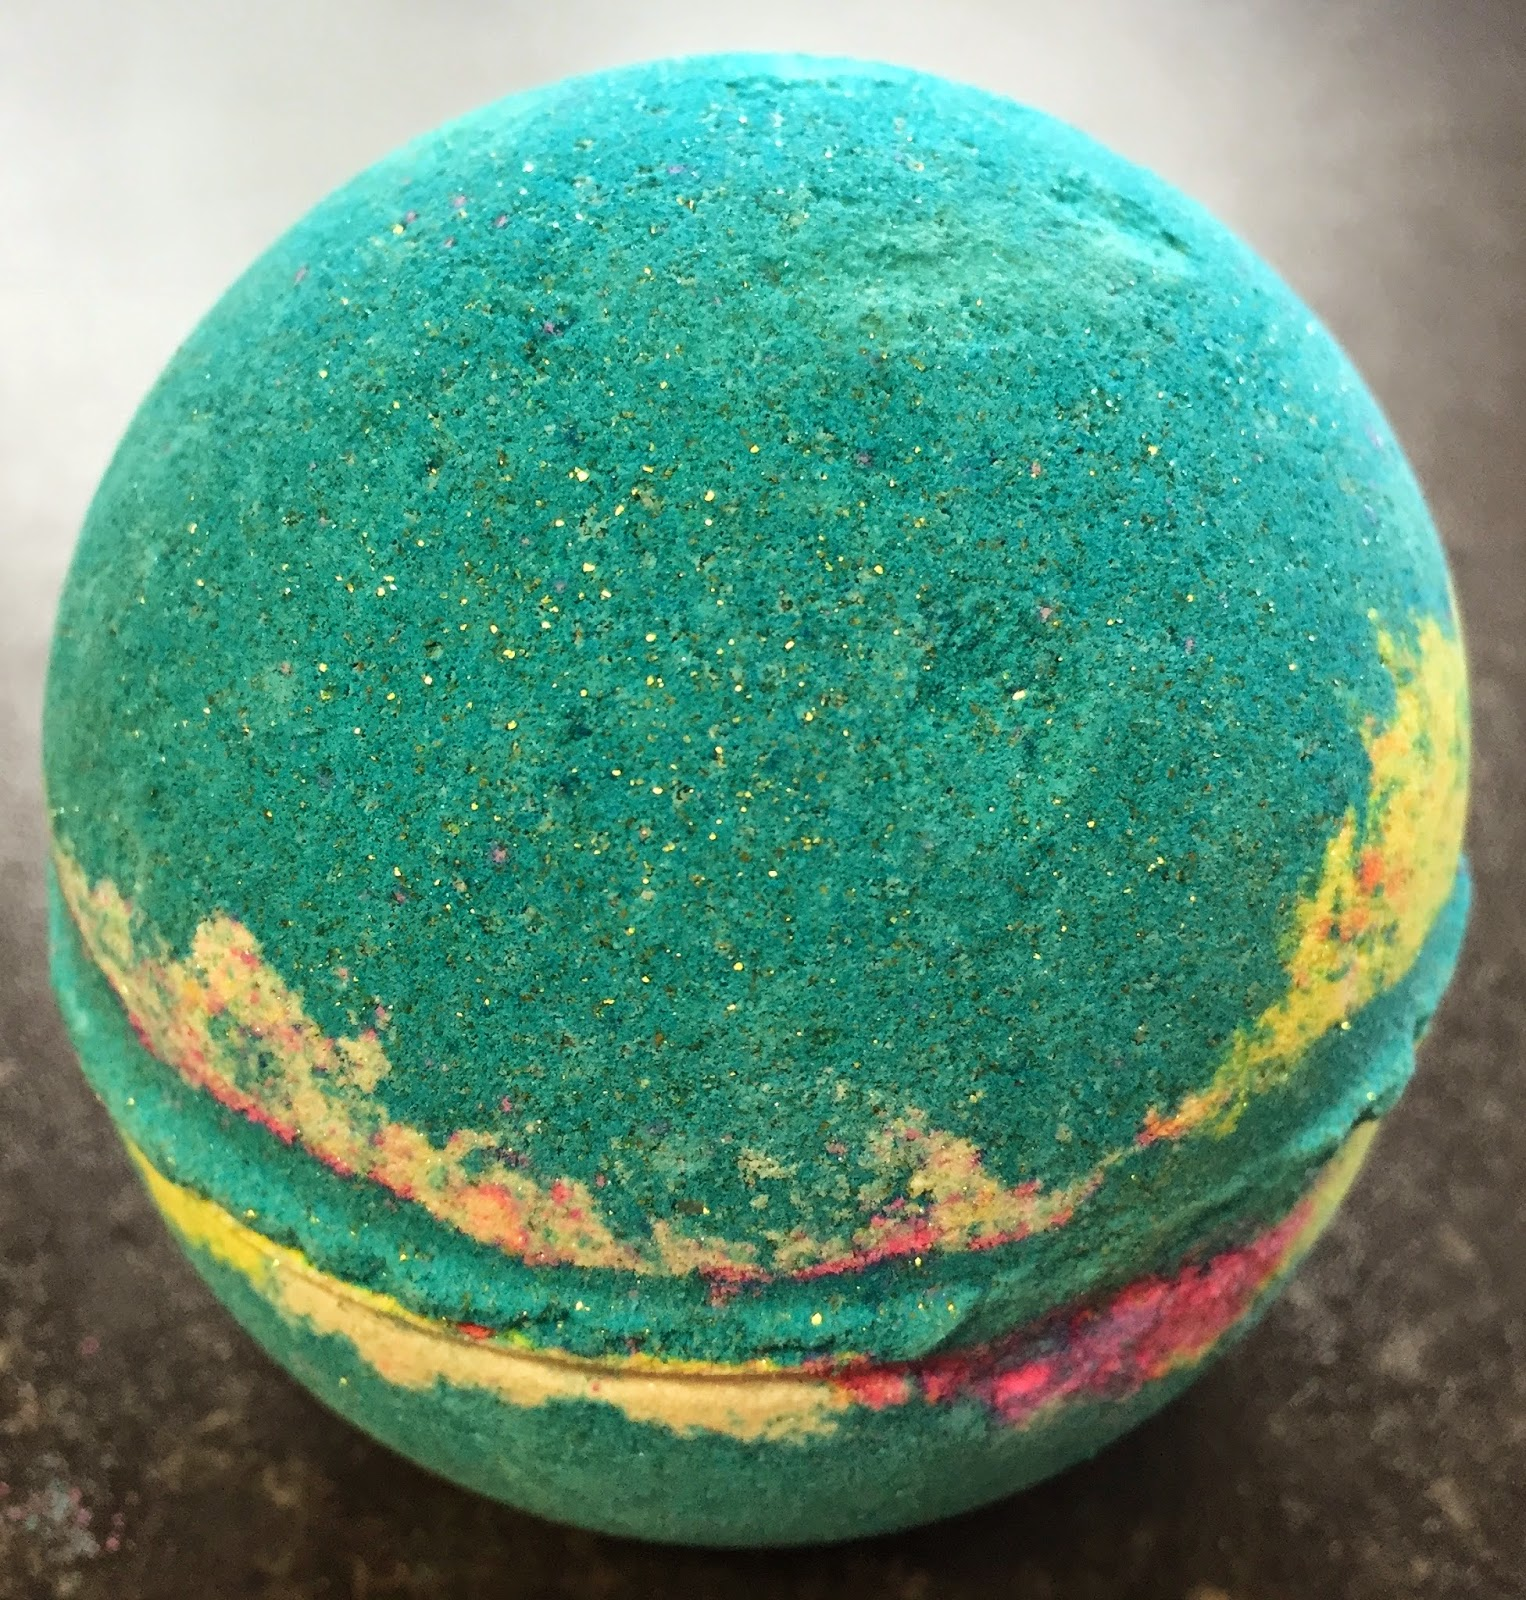 How To Make Bath Bomb Using Only Kitchen Stuff